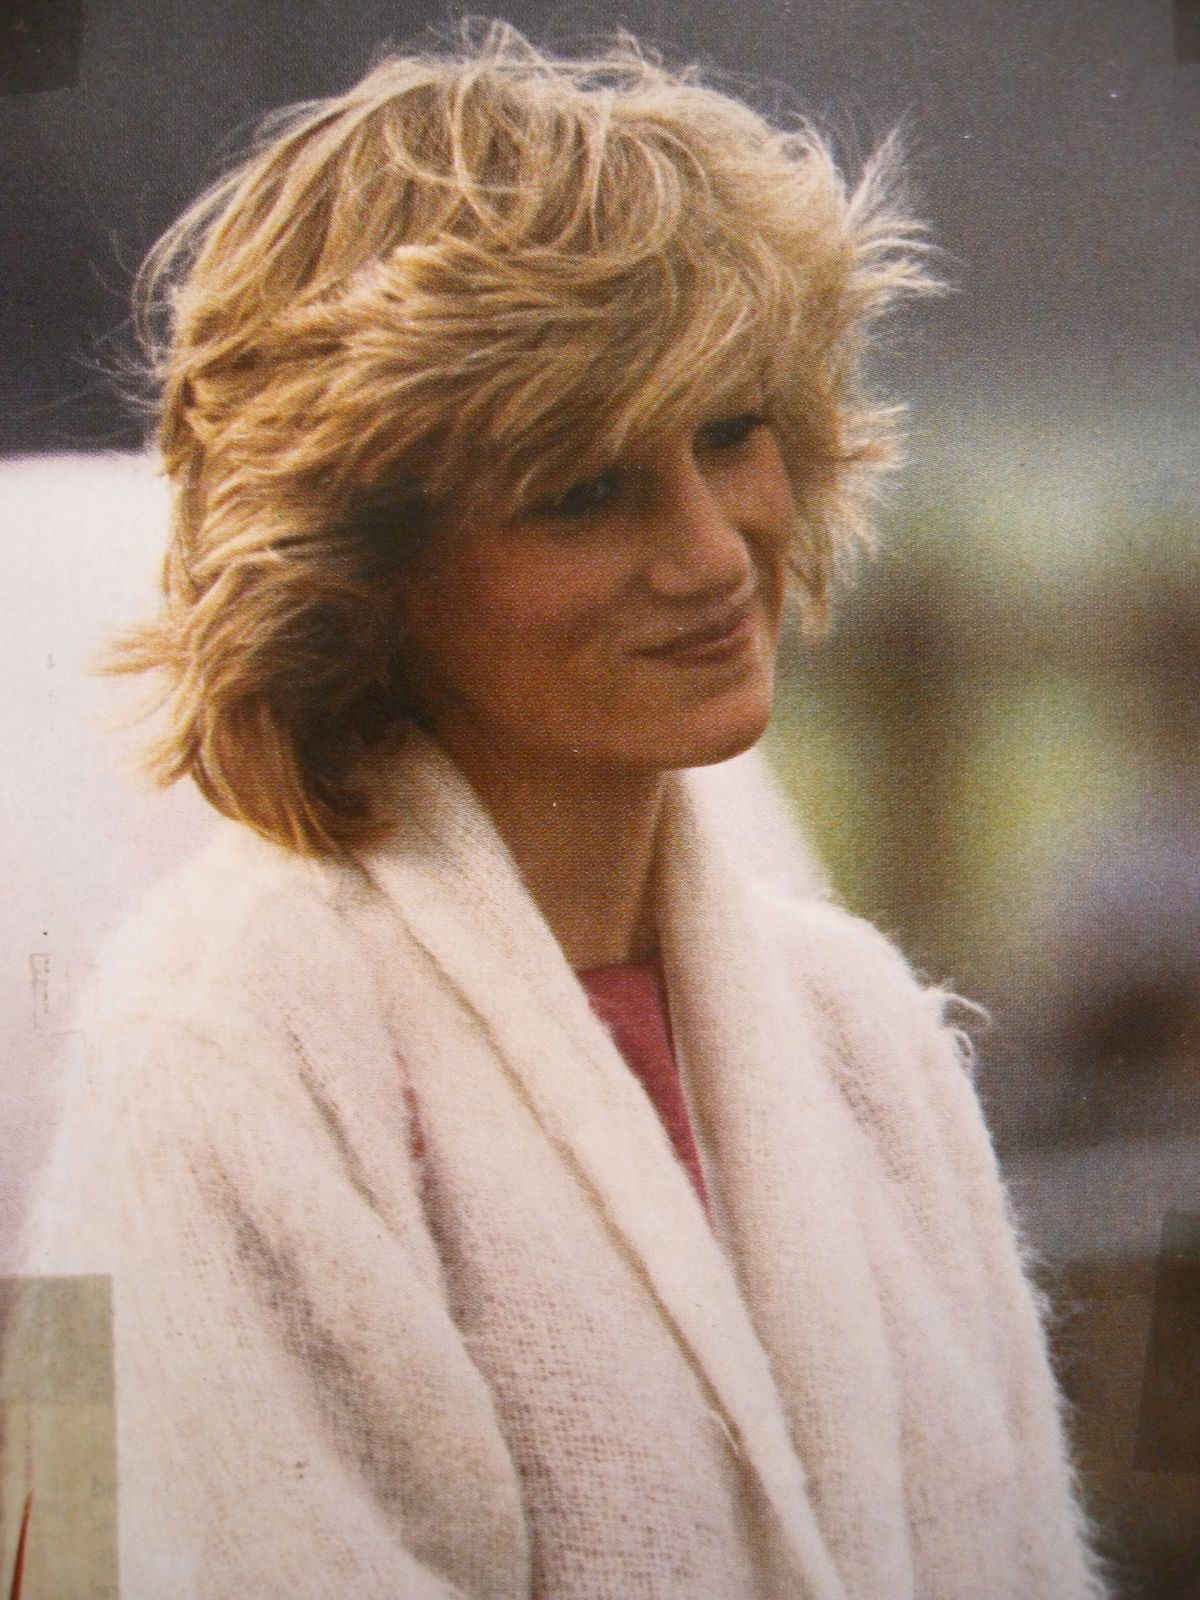 June 7, 1984: Princess Diana at the Smith's Lawn polo grounds in ...